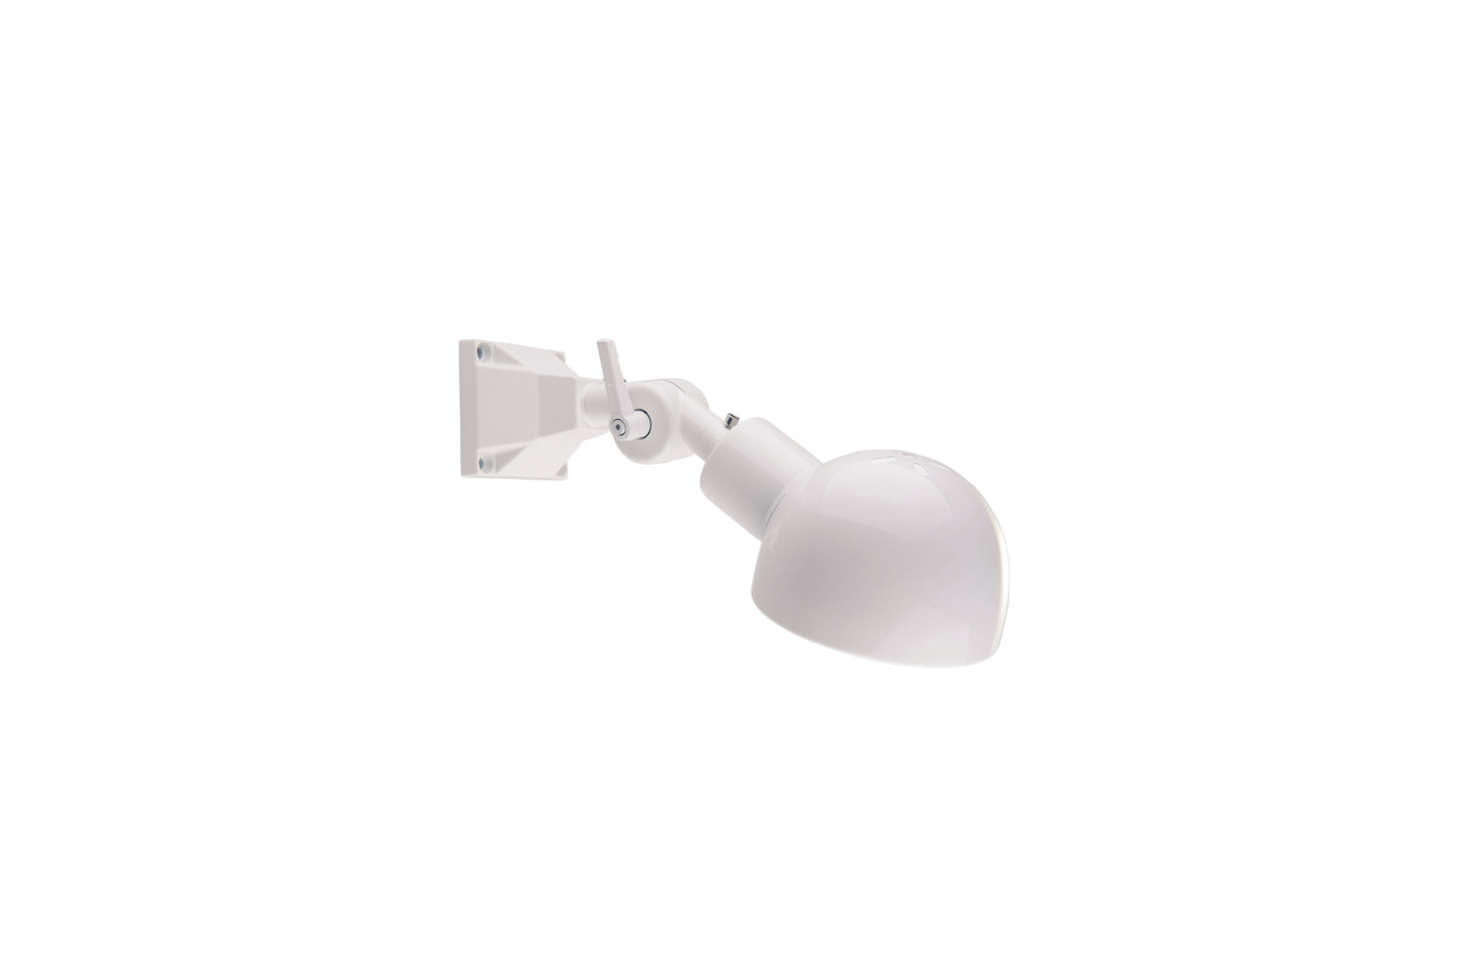 TheZangra White Steel Wall Lamp is an affordable €43, which makes up for the international shipping from Zangra in Belgium.